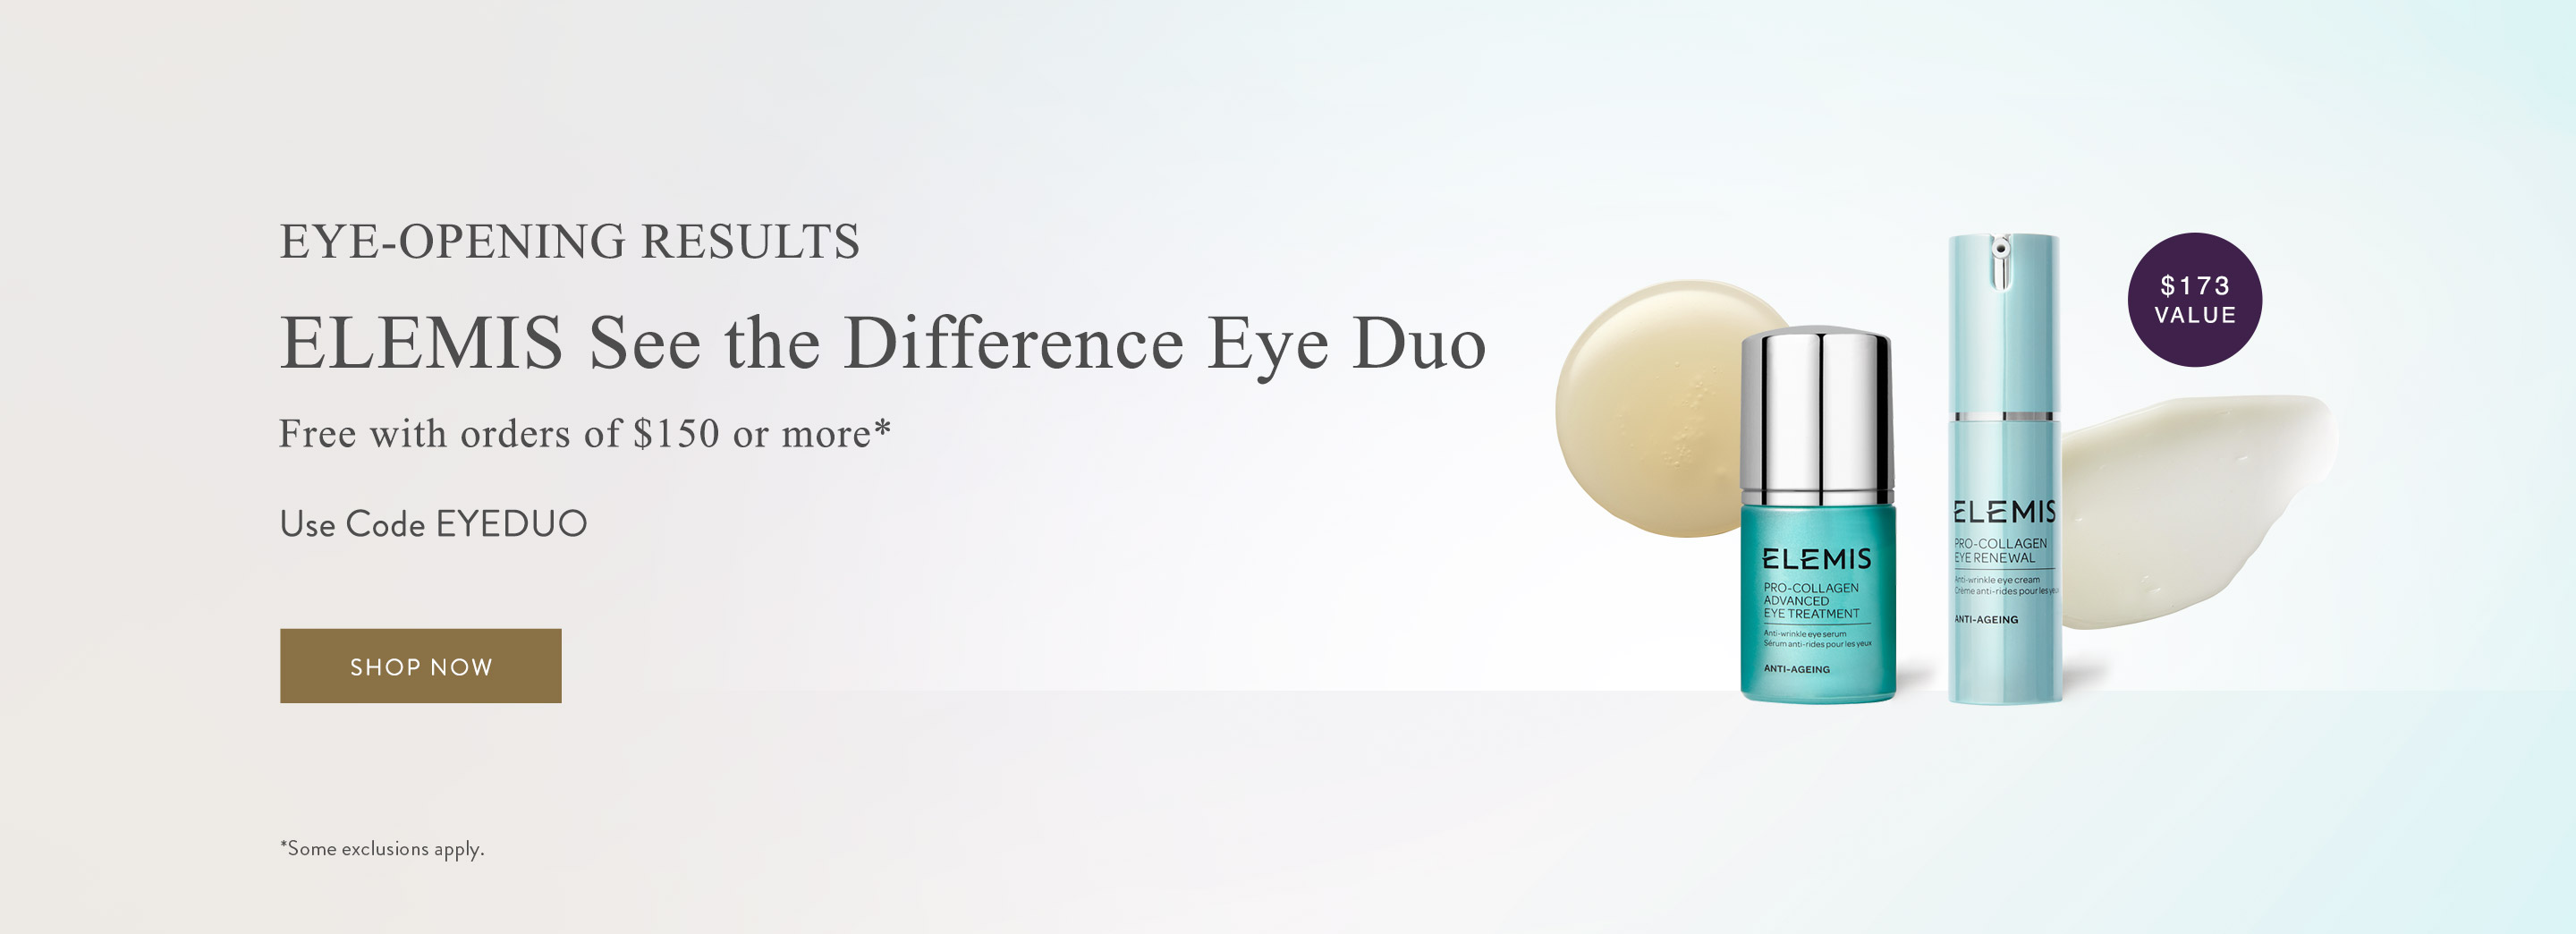 Free See the Difference Eye Duo with orders of $150 or more. Use code EYEDUO